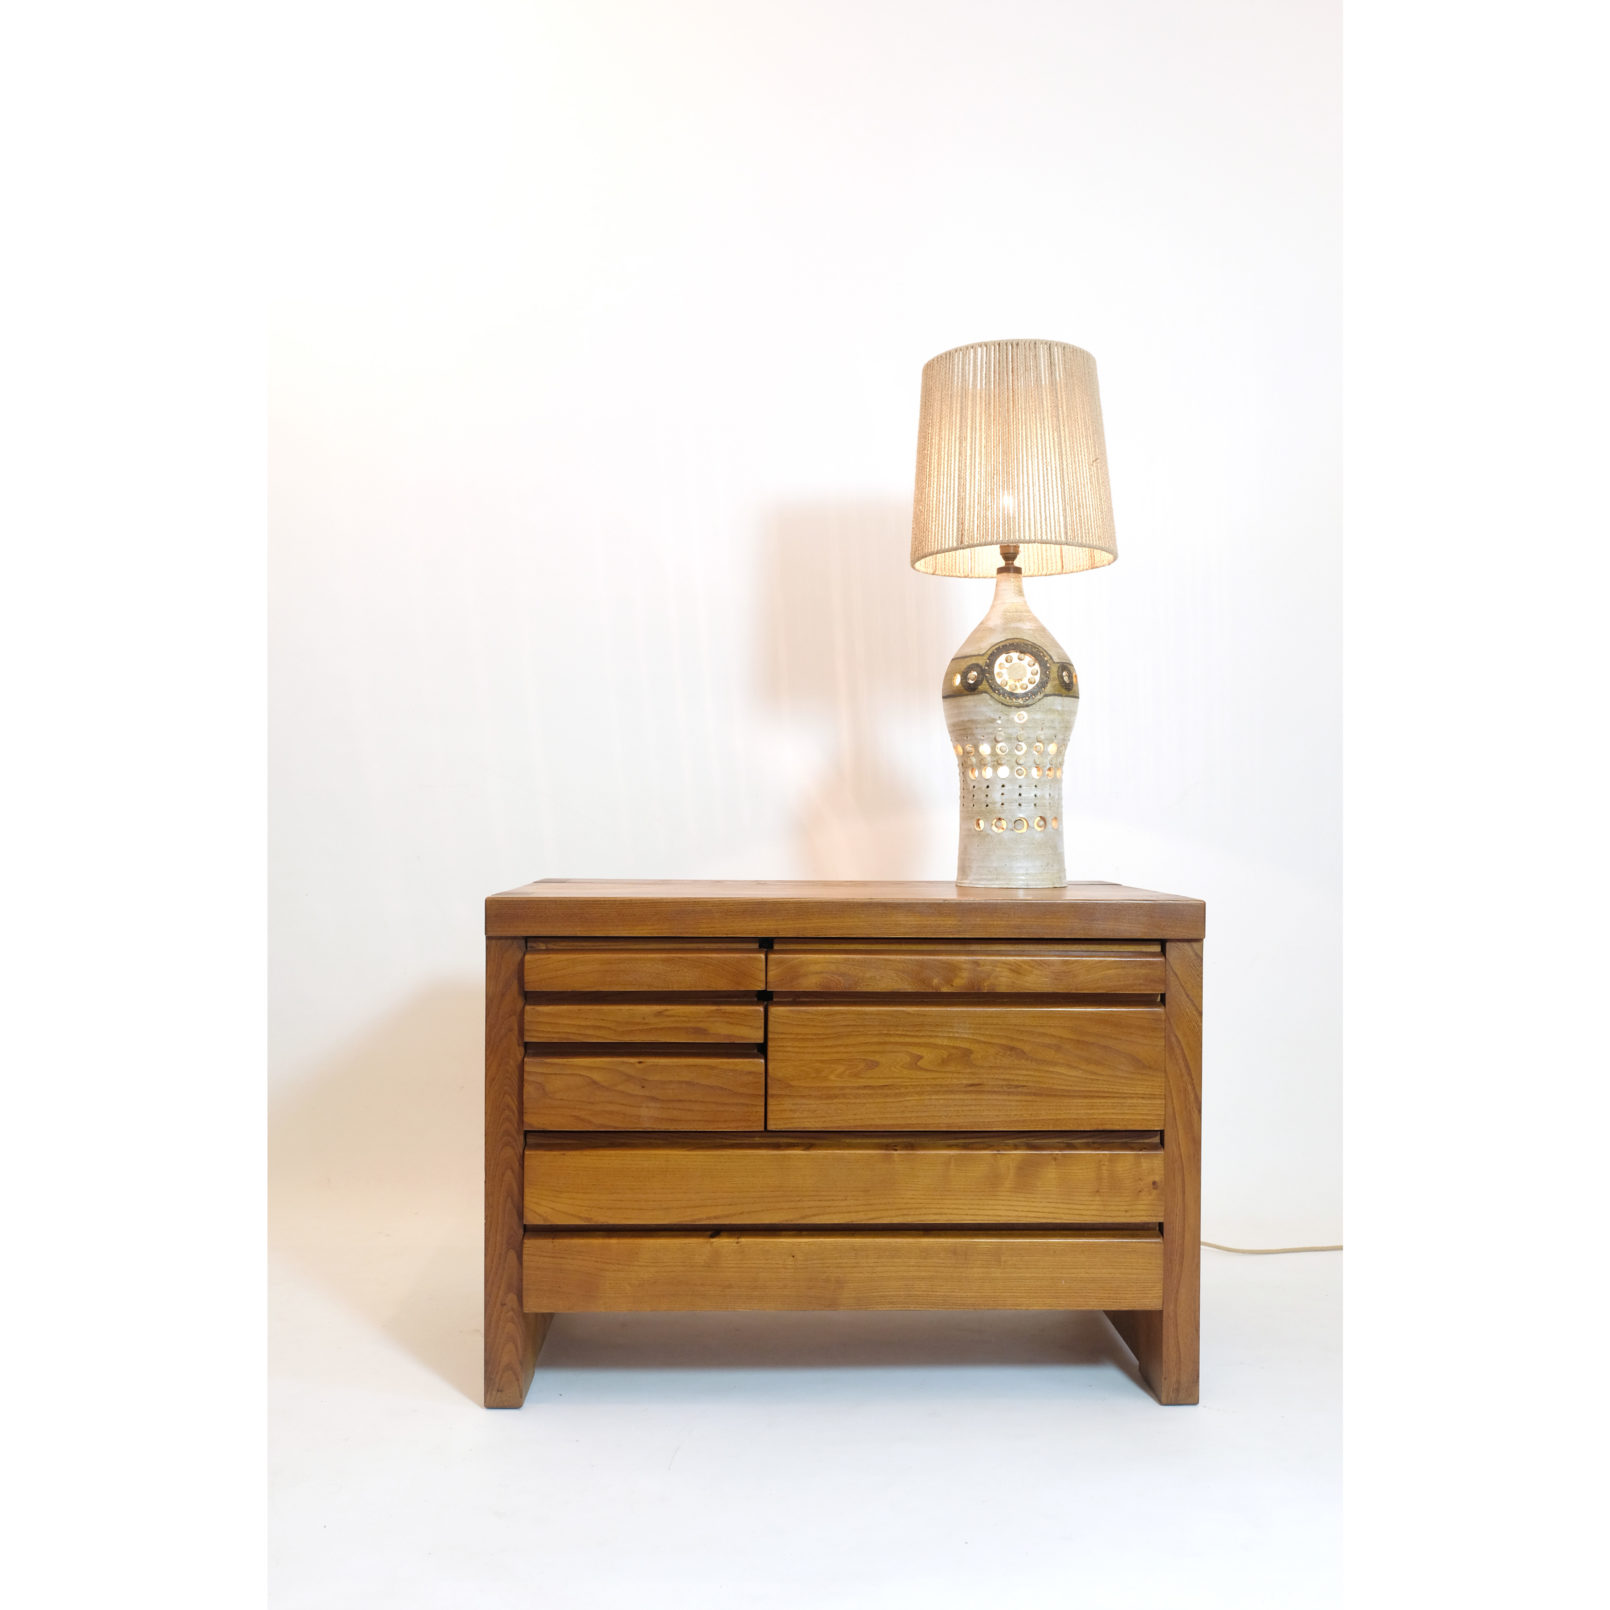 Pierre Chapo, R19 chest of drawers, solid elm, 1975.